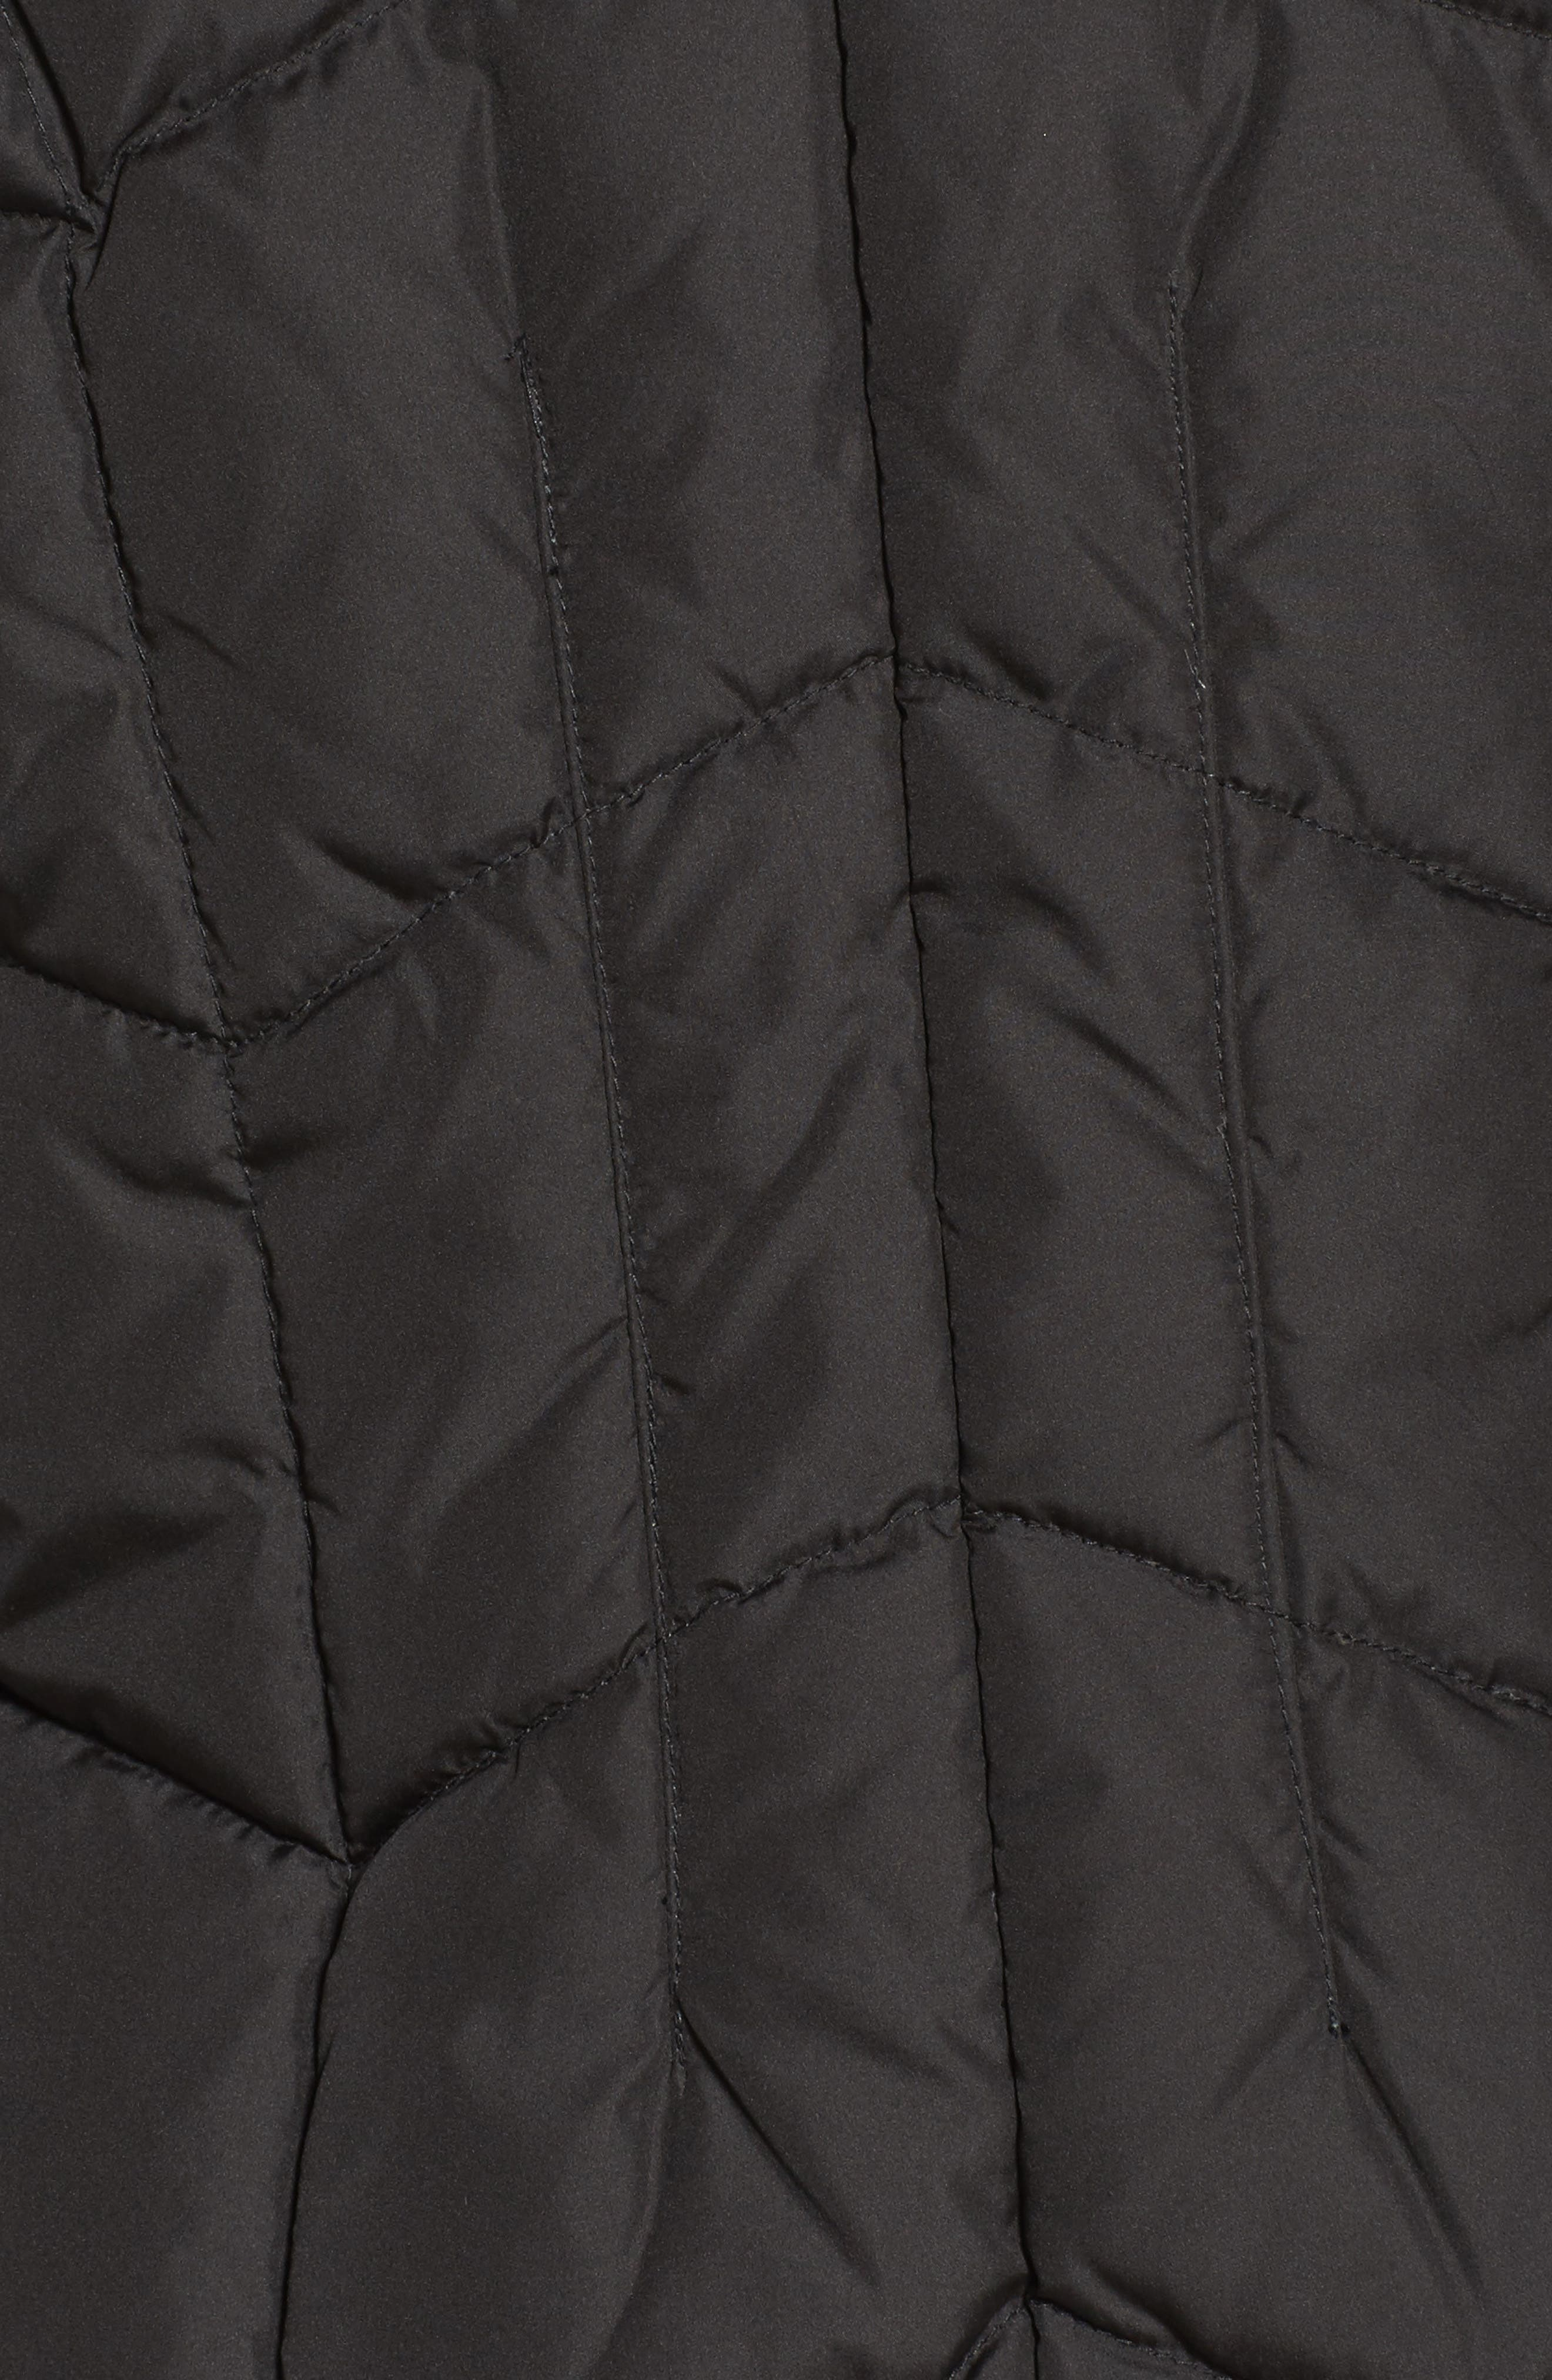 Quilted Coat with Faux Fur Trim,                             Alternate thumbnail 6, color,                             001